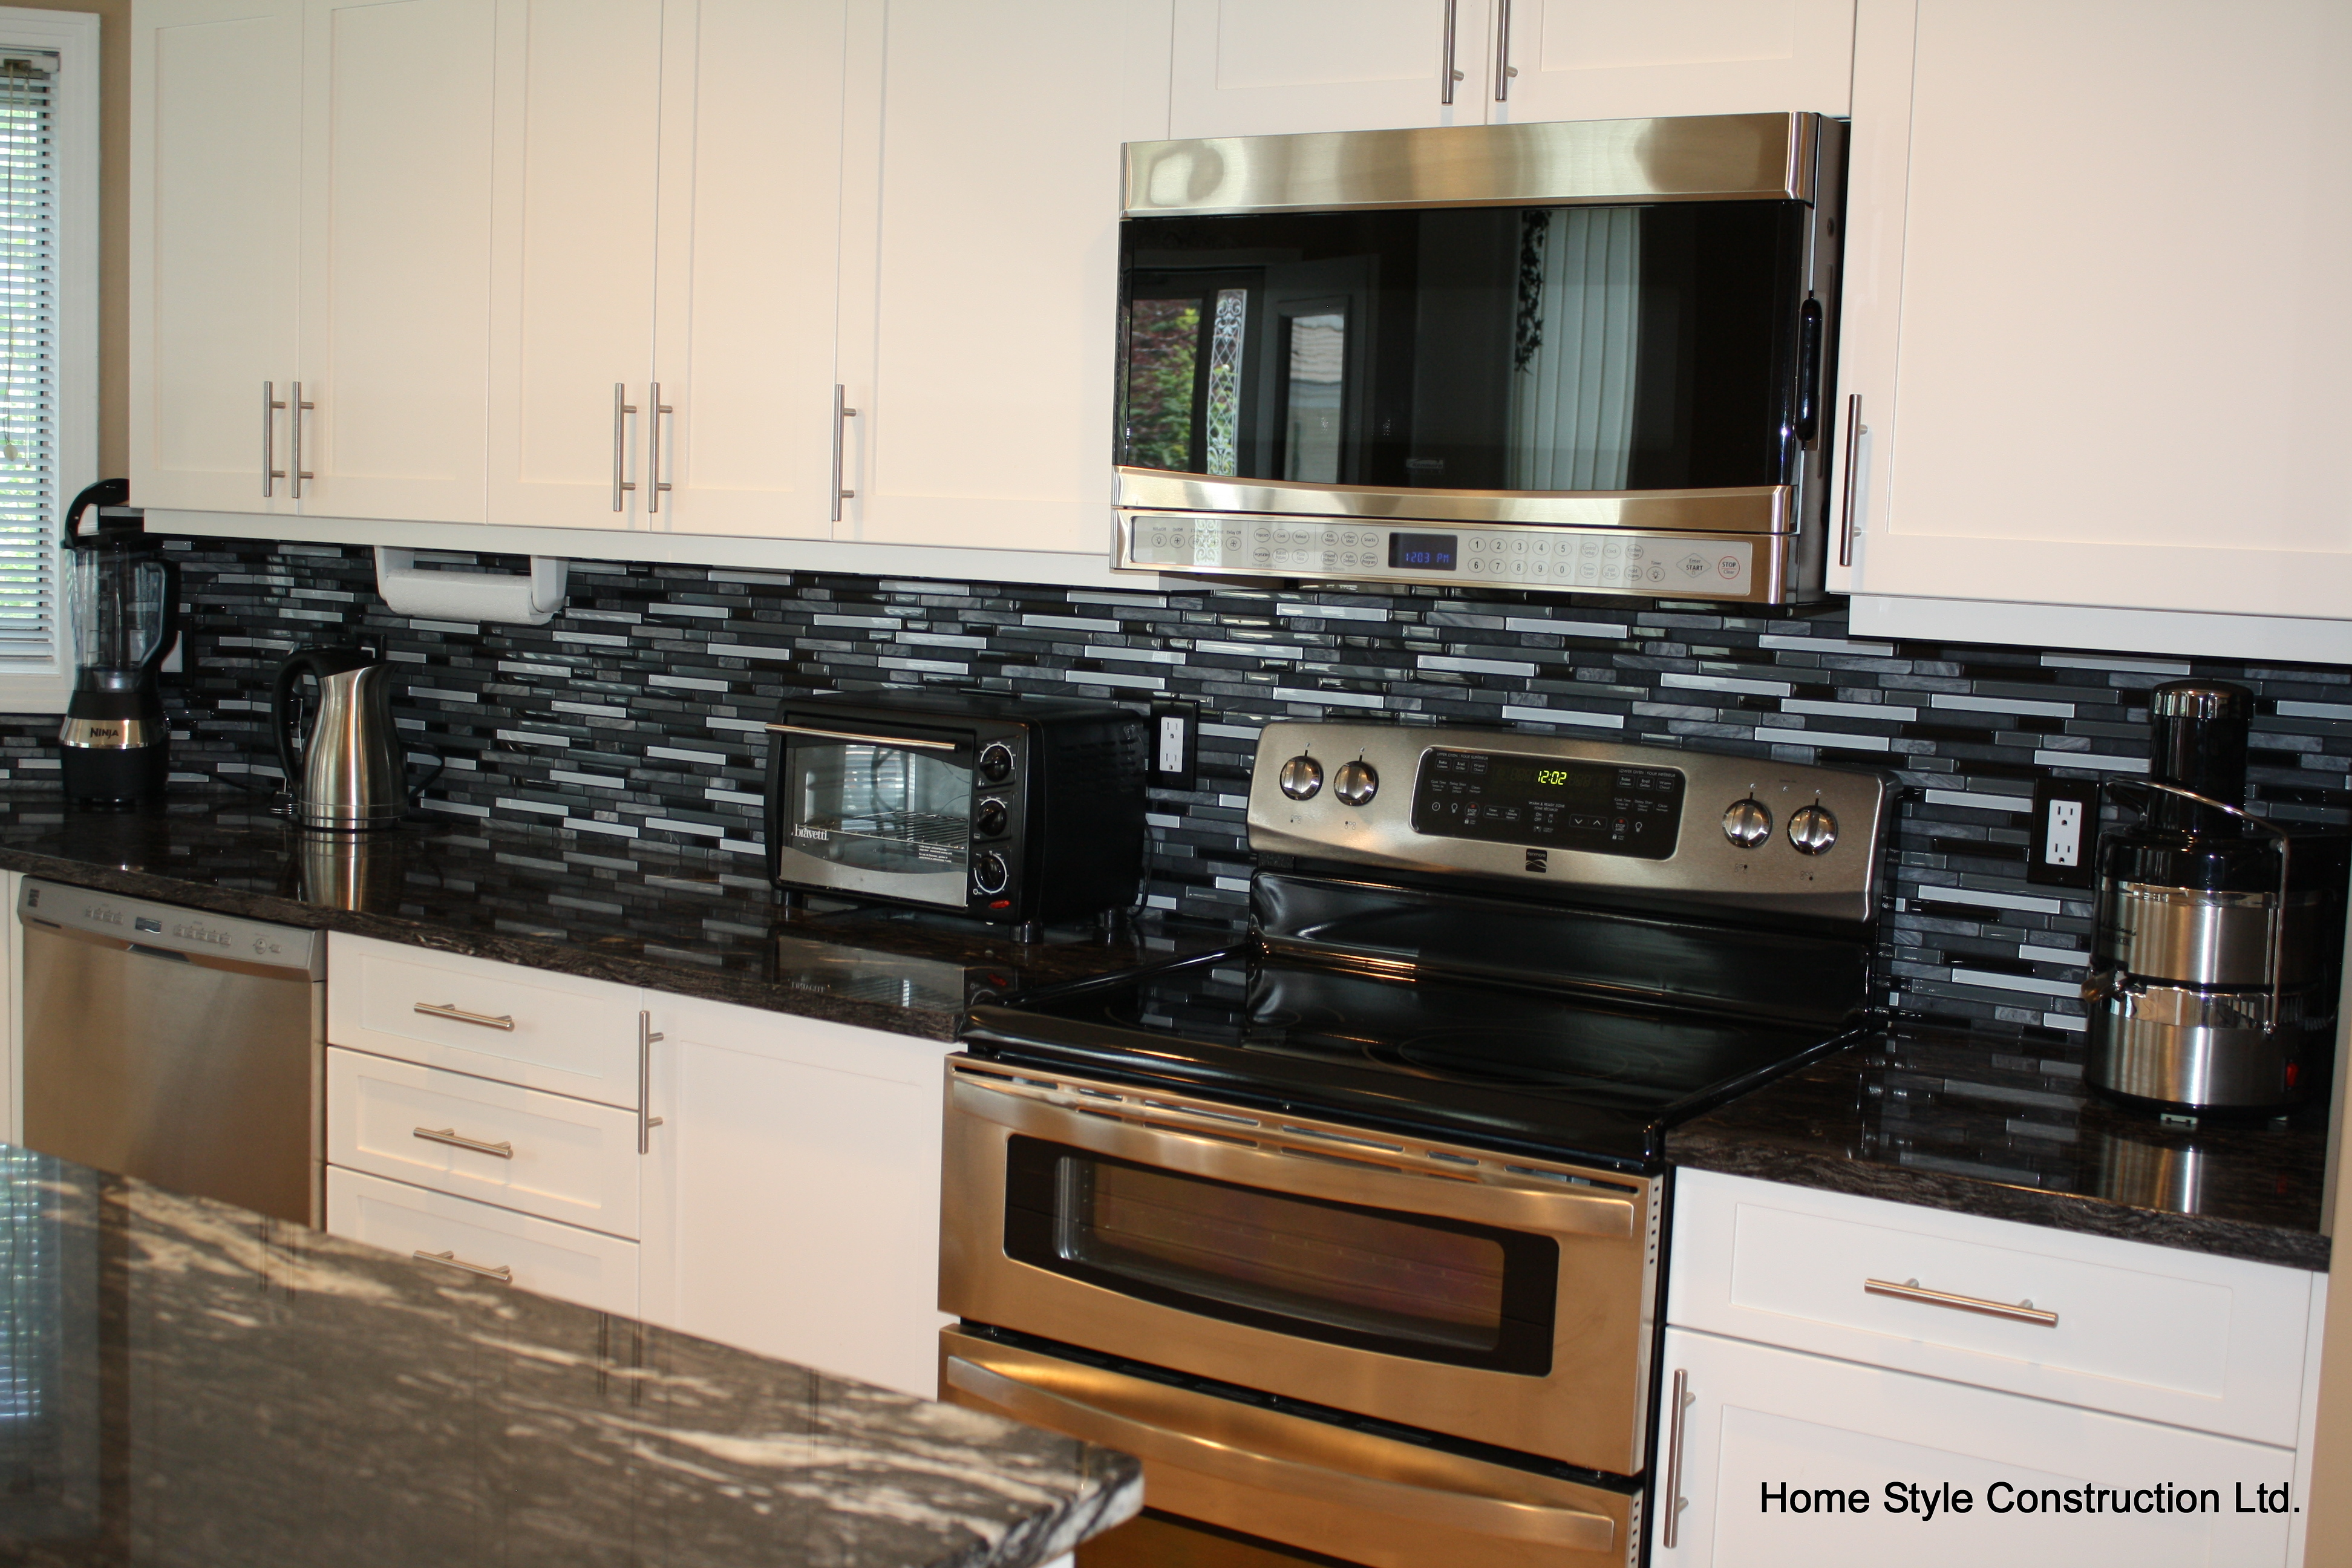 Cabinet Doors And More For All Of Your Kitchen Bathroom And Other